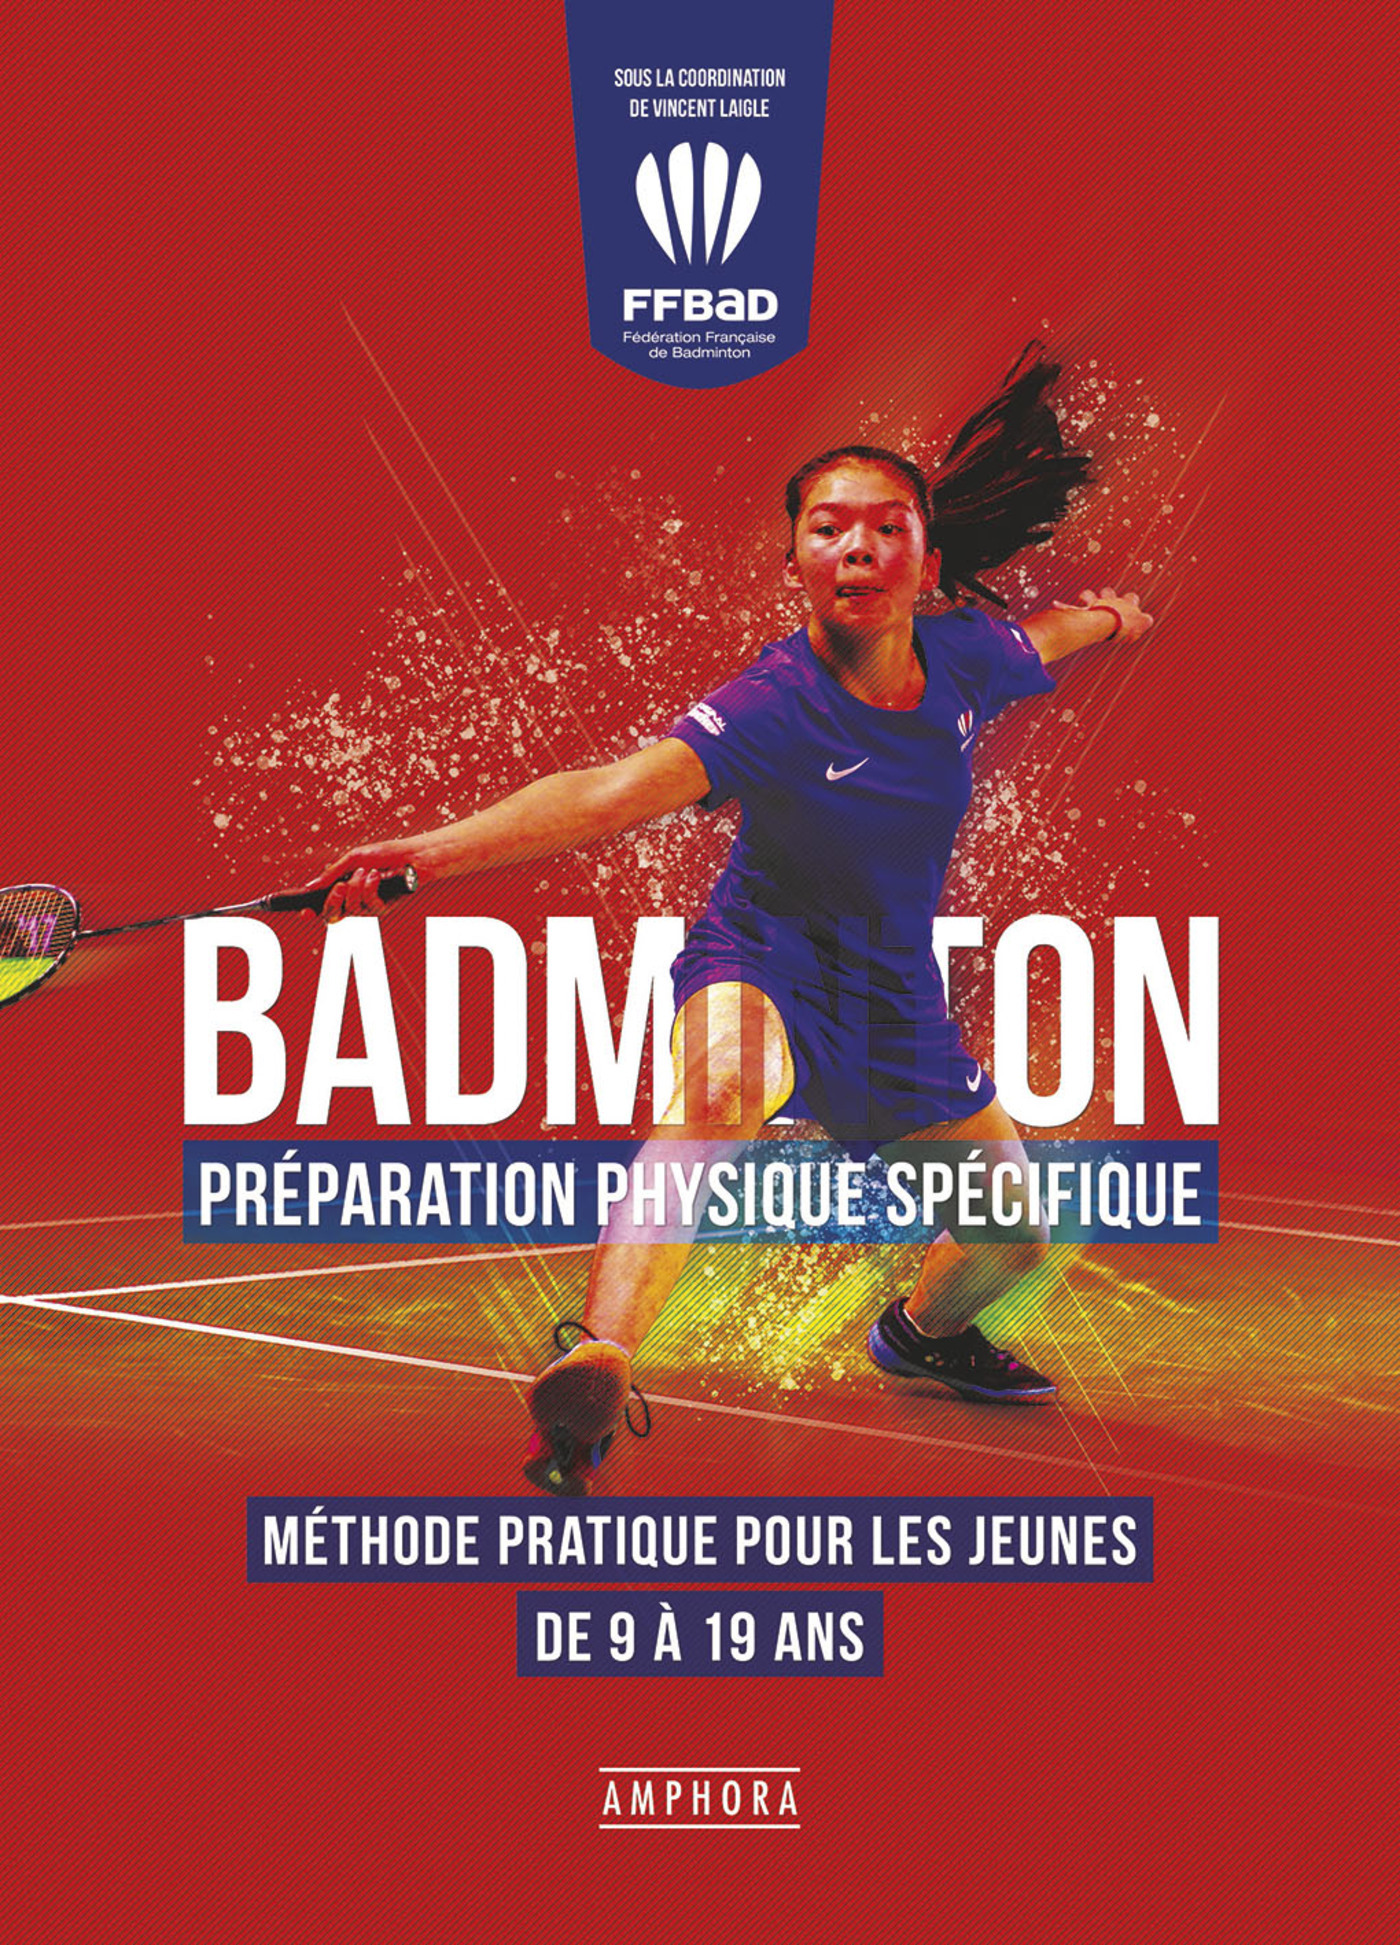 BADMINTON PREPARATION PHYSIQUE SPECIFIQUE